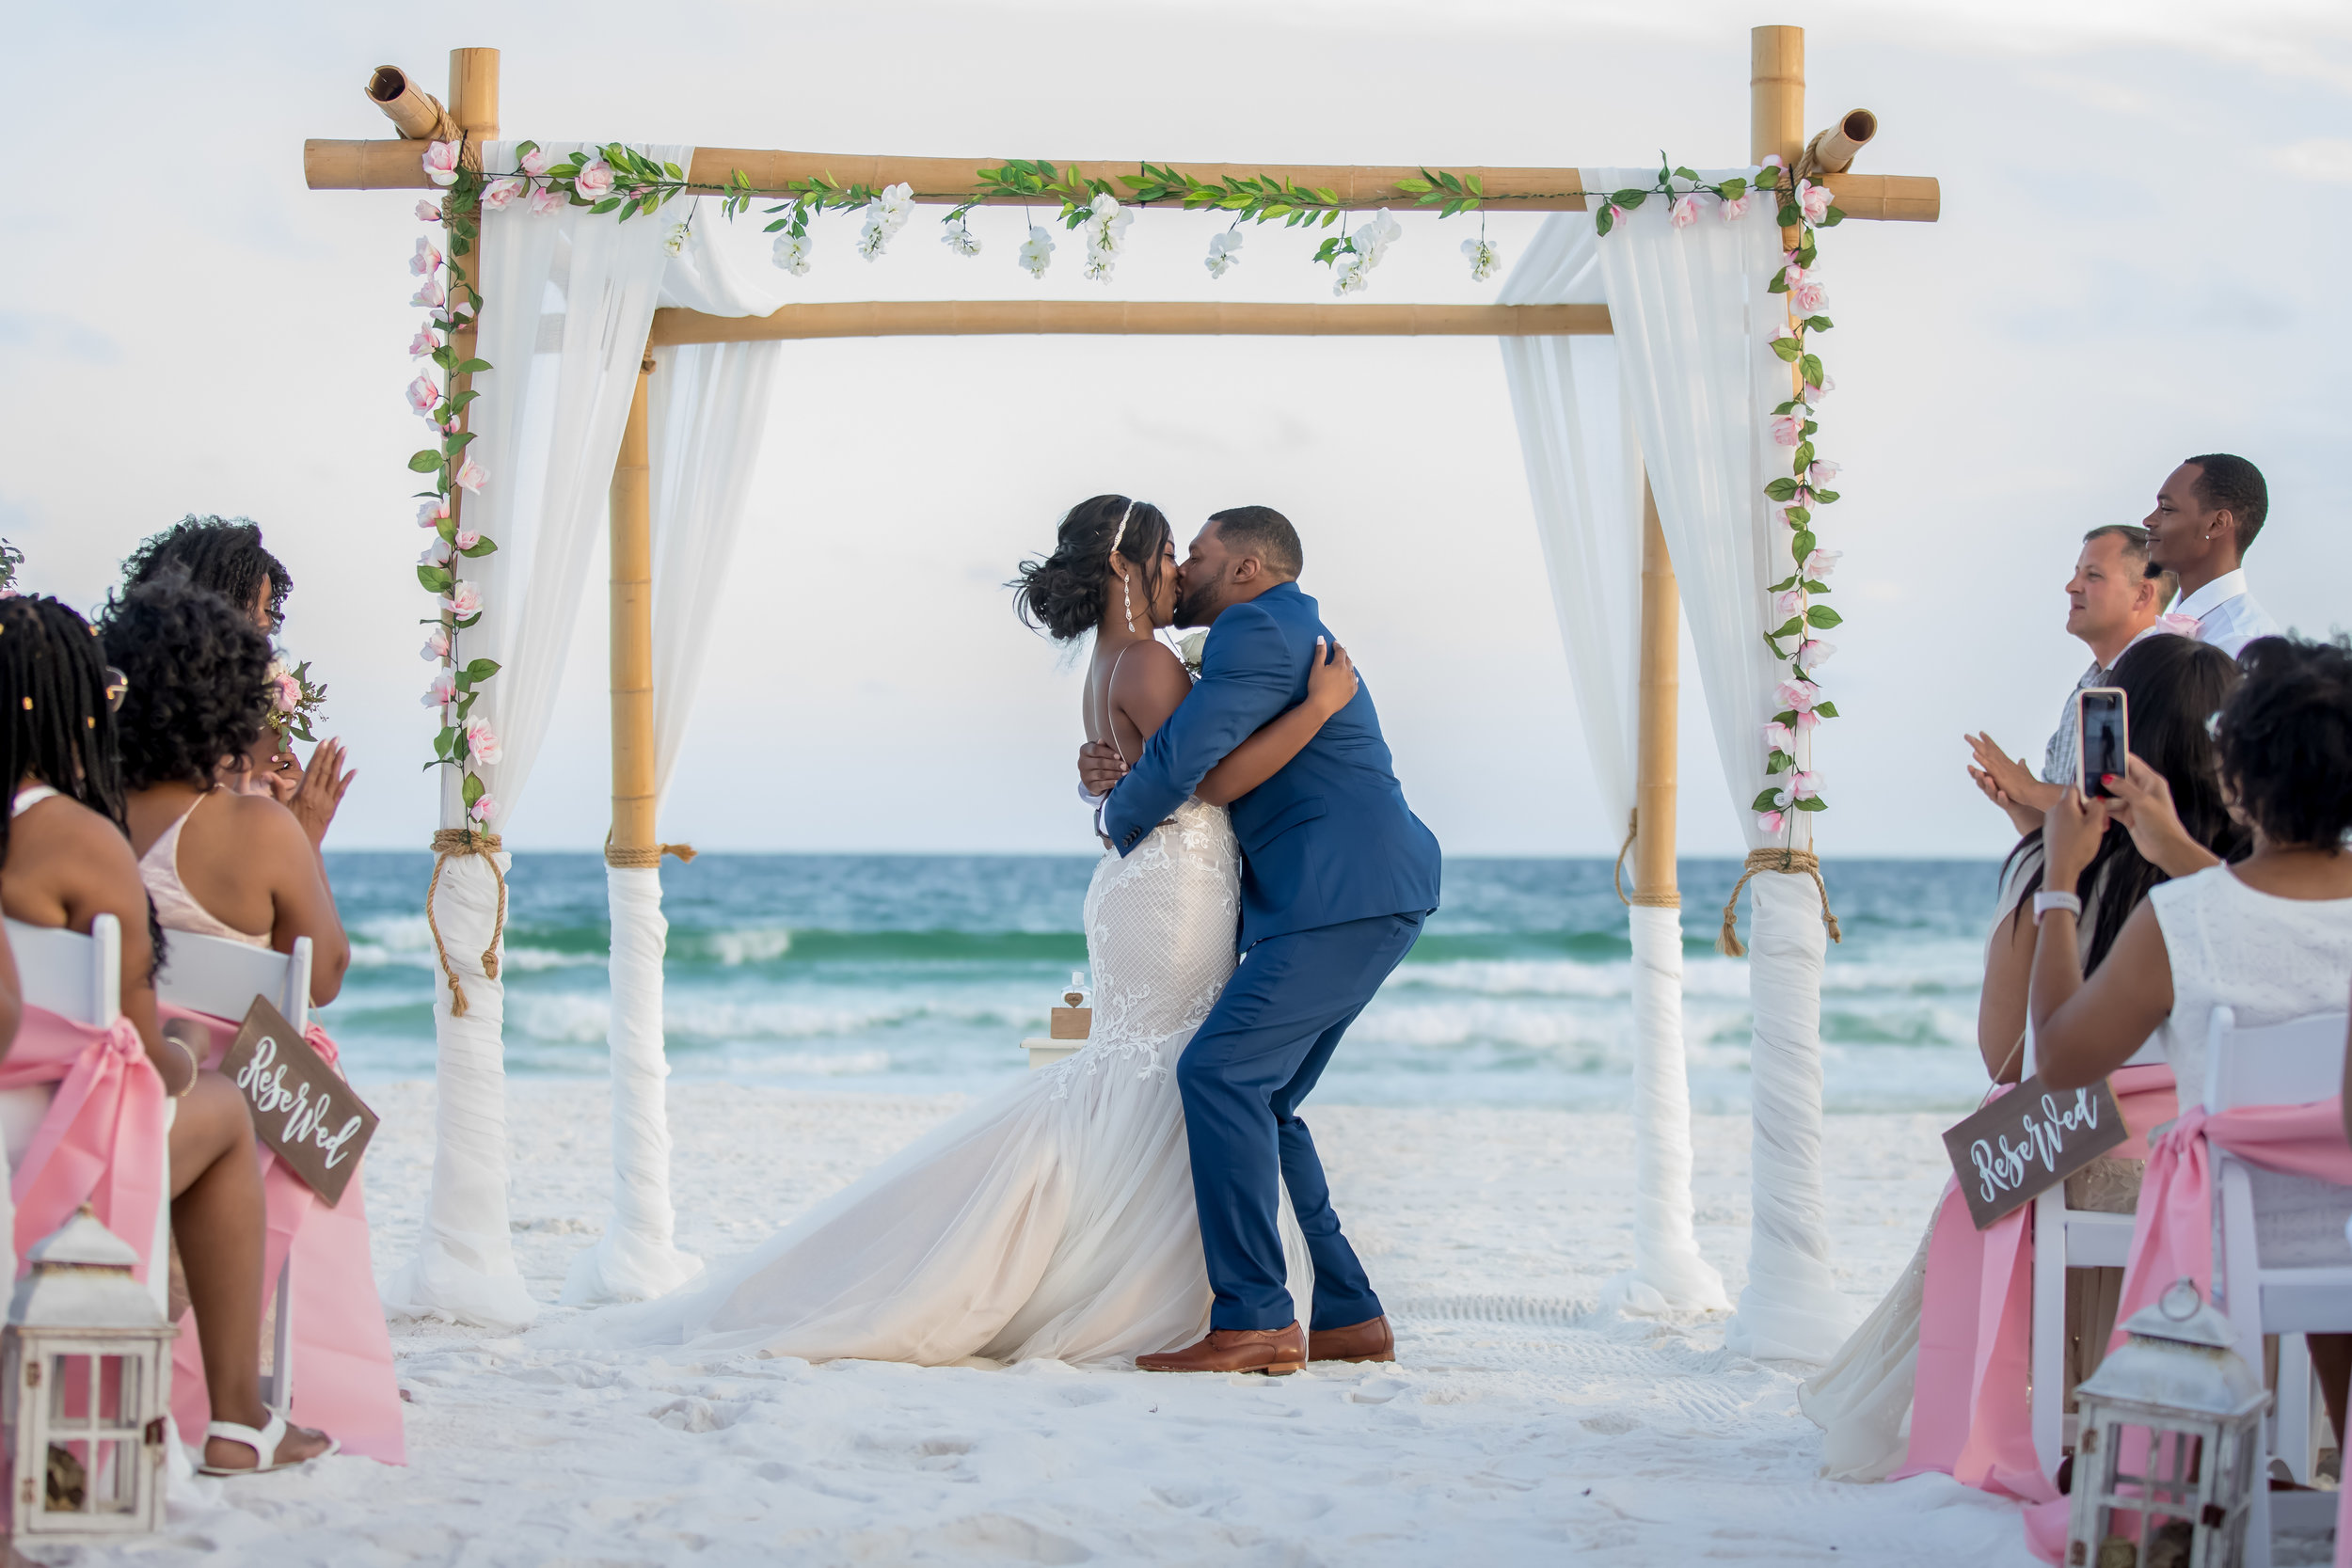 We provide a full range of Florida Beach Wedding Services and have elegant beach wedding packages for nearly any budget. We offer competitive rates and a full list of additional services.